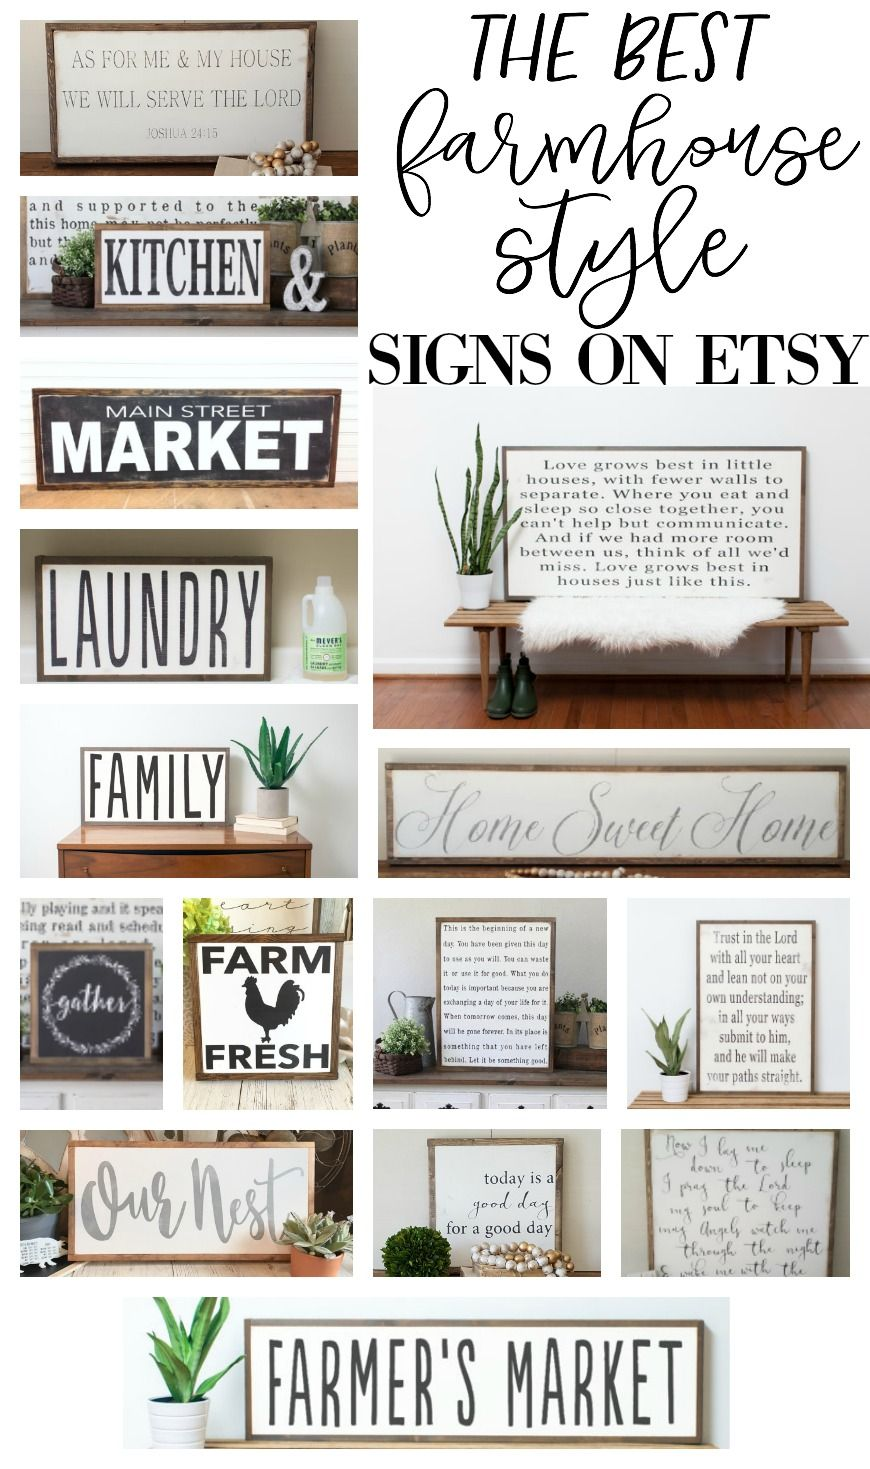 The best farmhouse style signs on etsy sign on farmhouse style wall decor the best farmhouse style signs on etsy amipublicfo Image collections